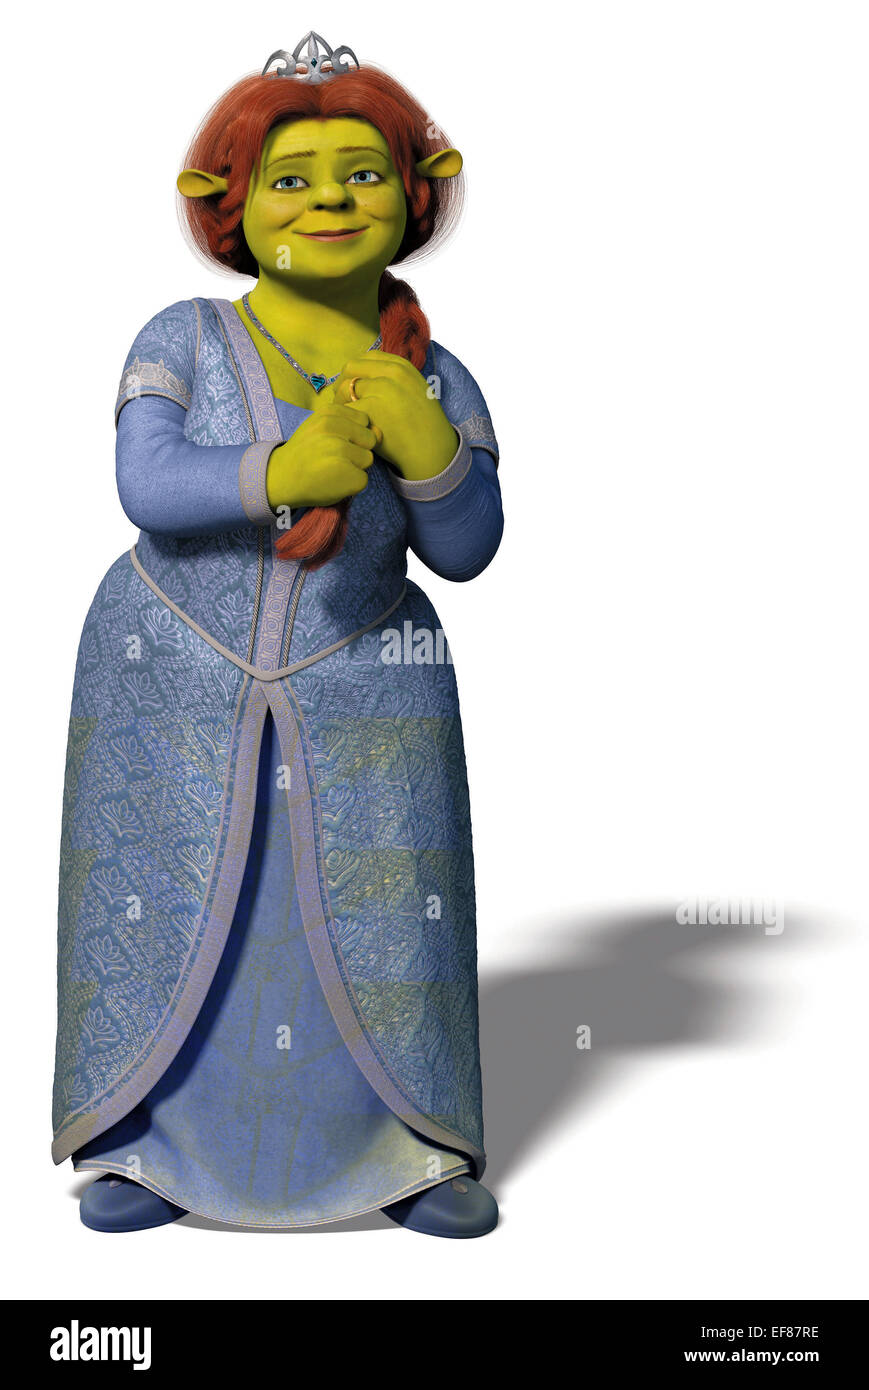 Stock Photo - PRINCESS FIONA SHREK THE THIRD  SHREK 3  2007 Shrek 3 Fiona